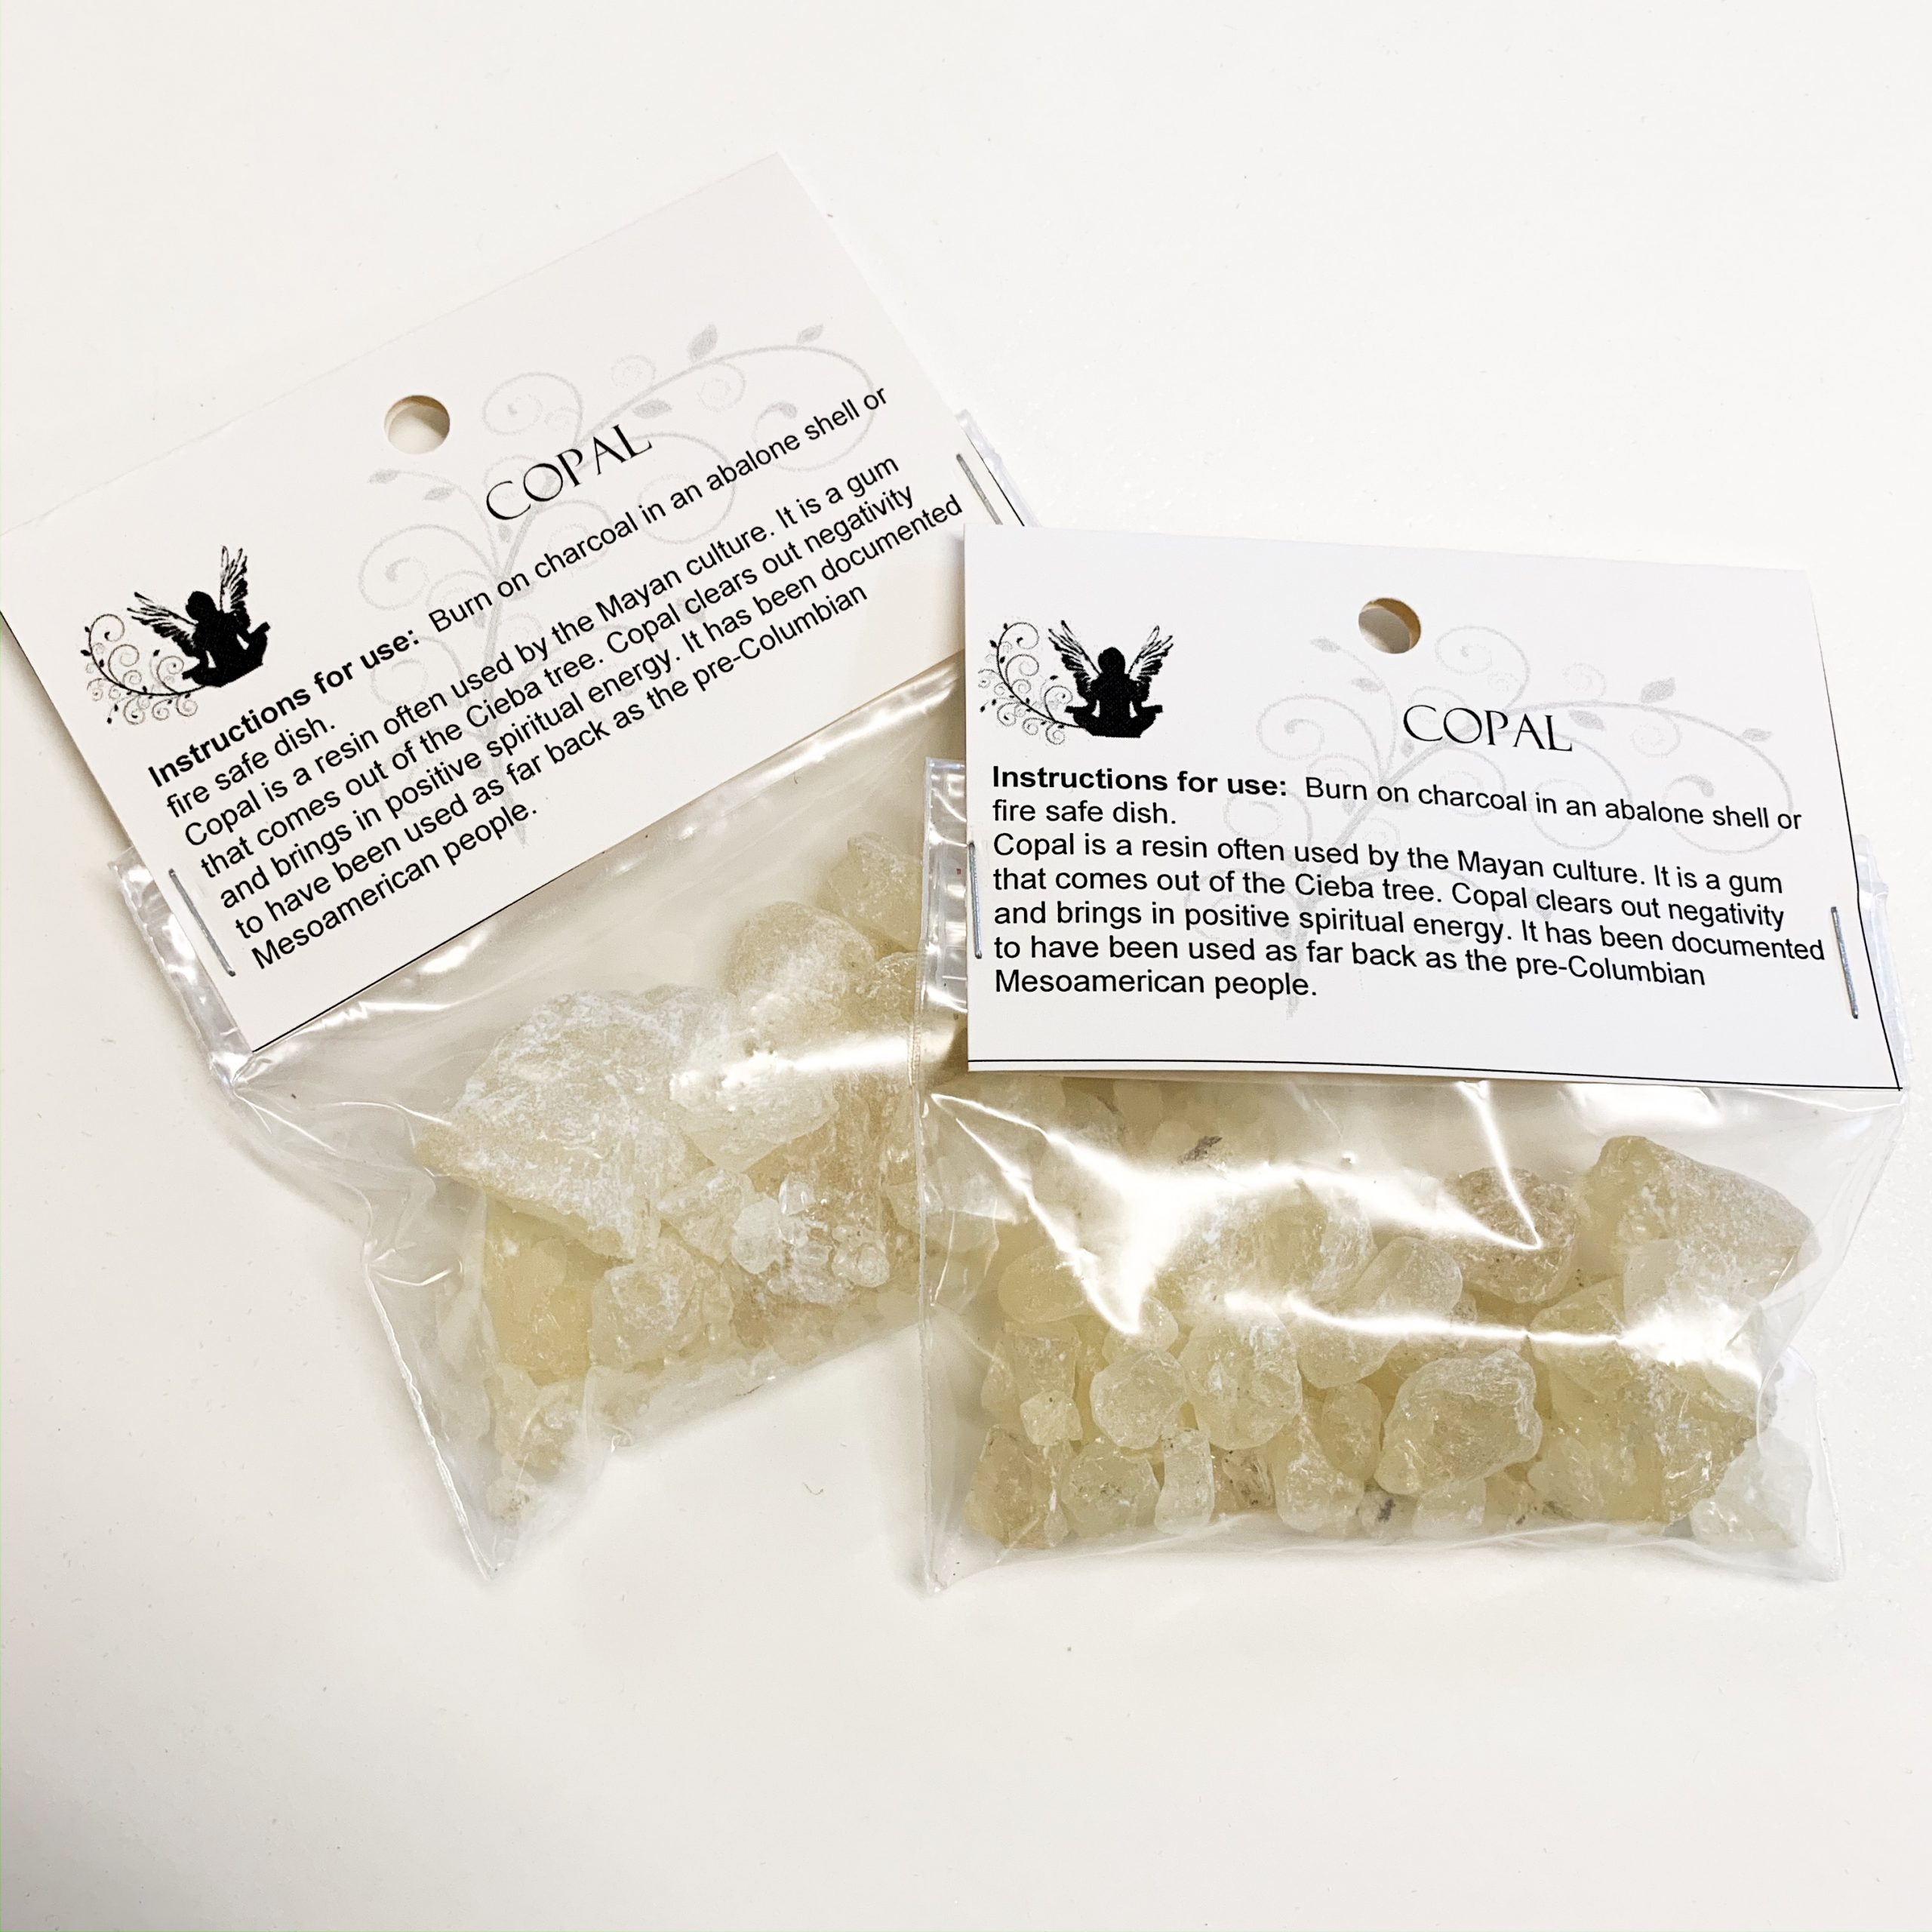 Copal Resin To Clear Out Negativity And Bring In Positive Spiritual Energy